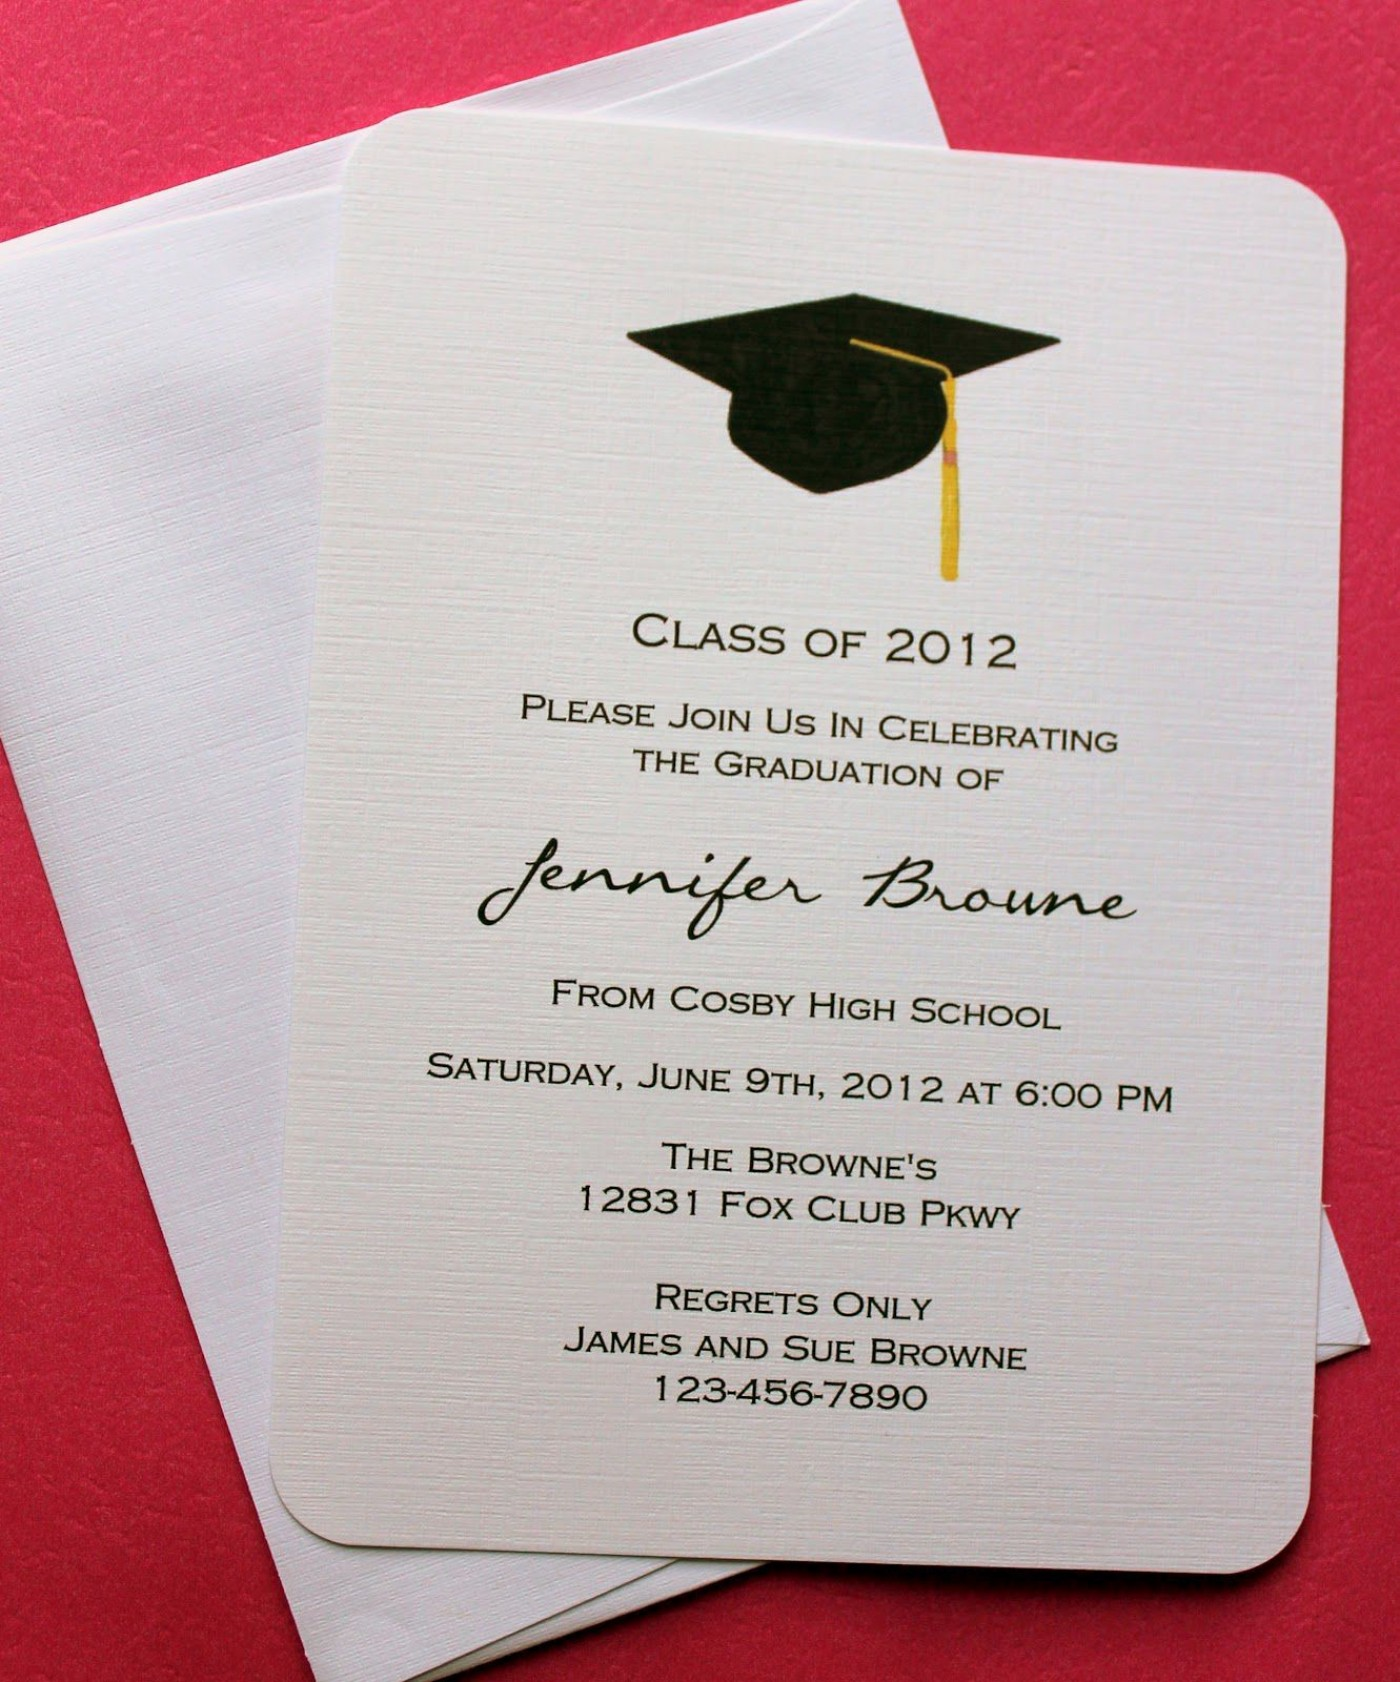 007 Fantastic College Graduation Invitation Template Image  Party Free For Word1400